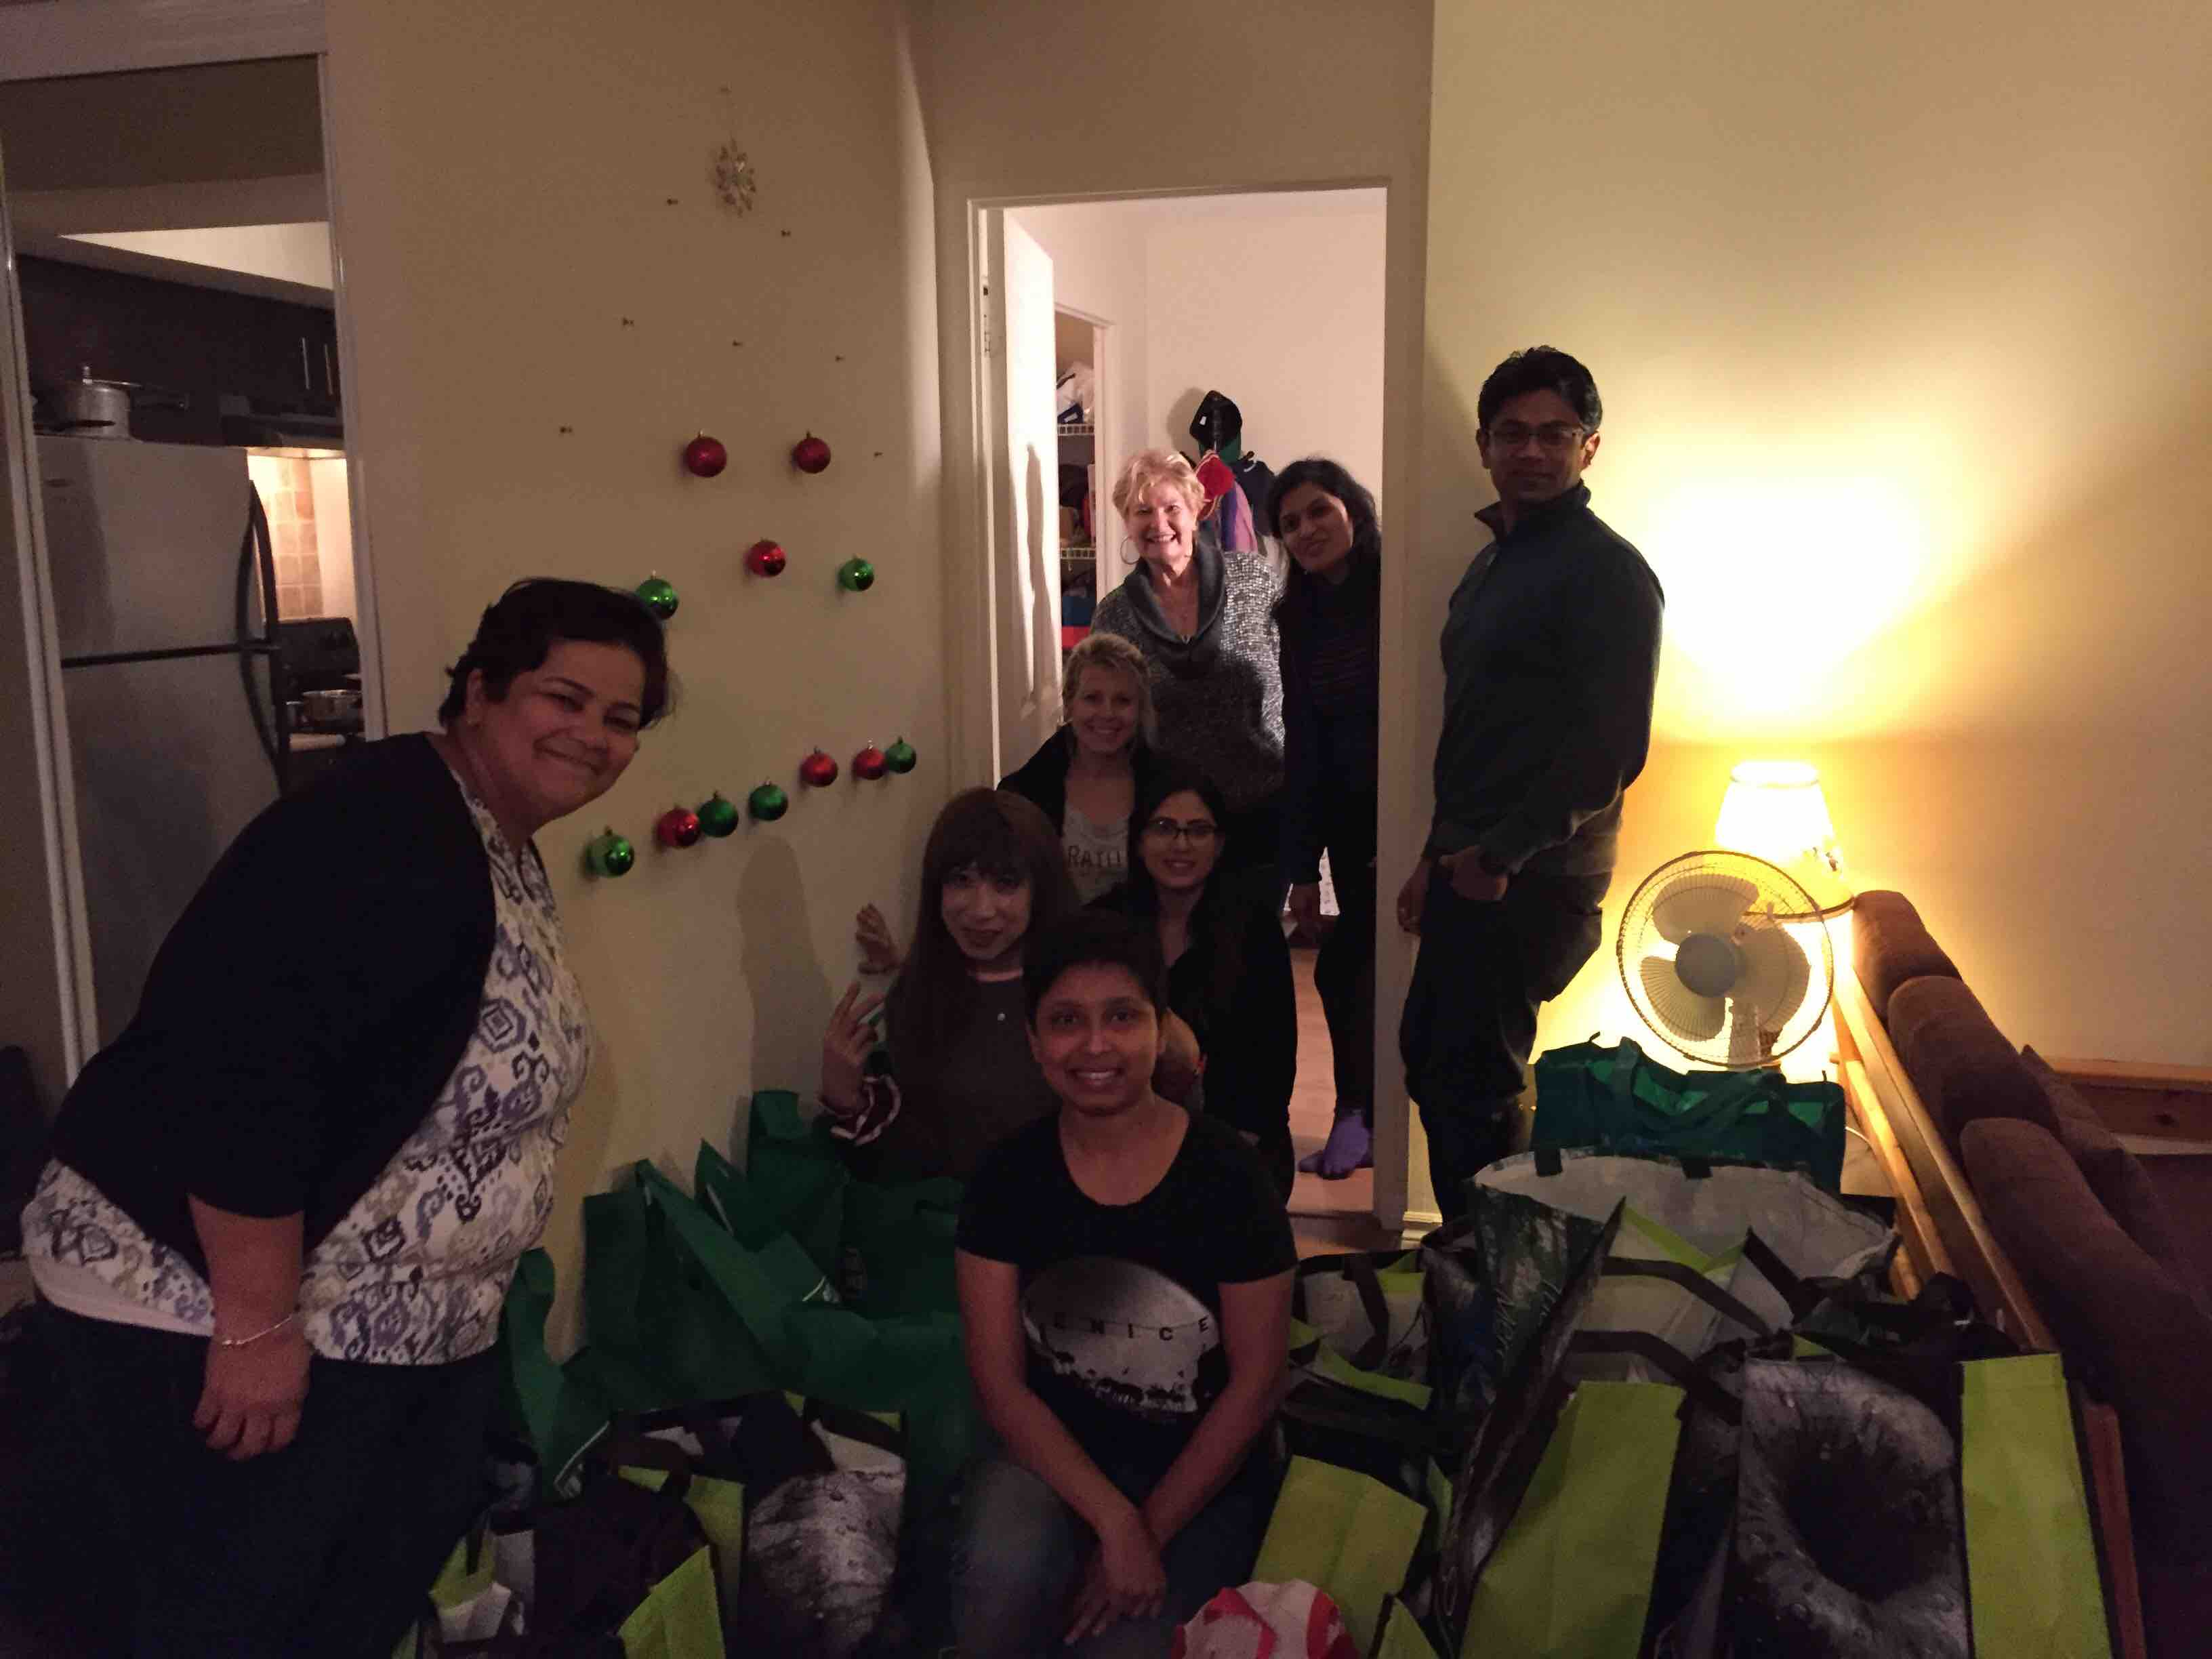 Homeless Deb Event R Toronto Rups By Fundraiser - The Help Completed Of